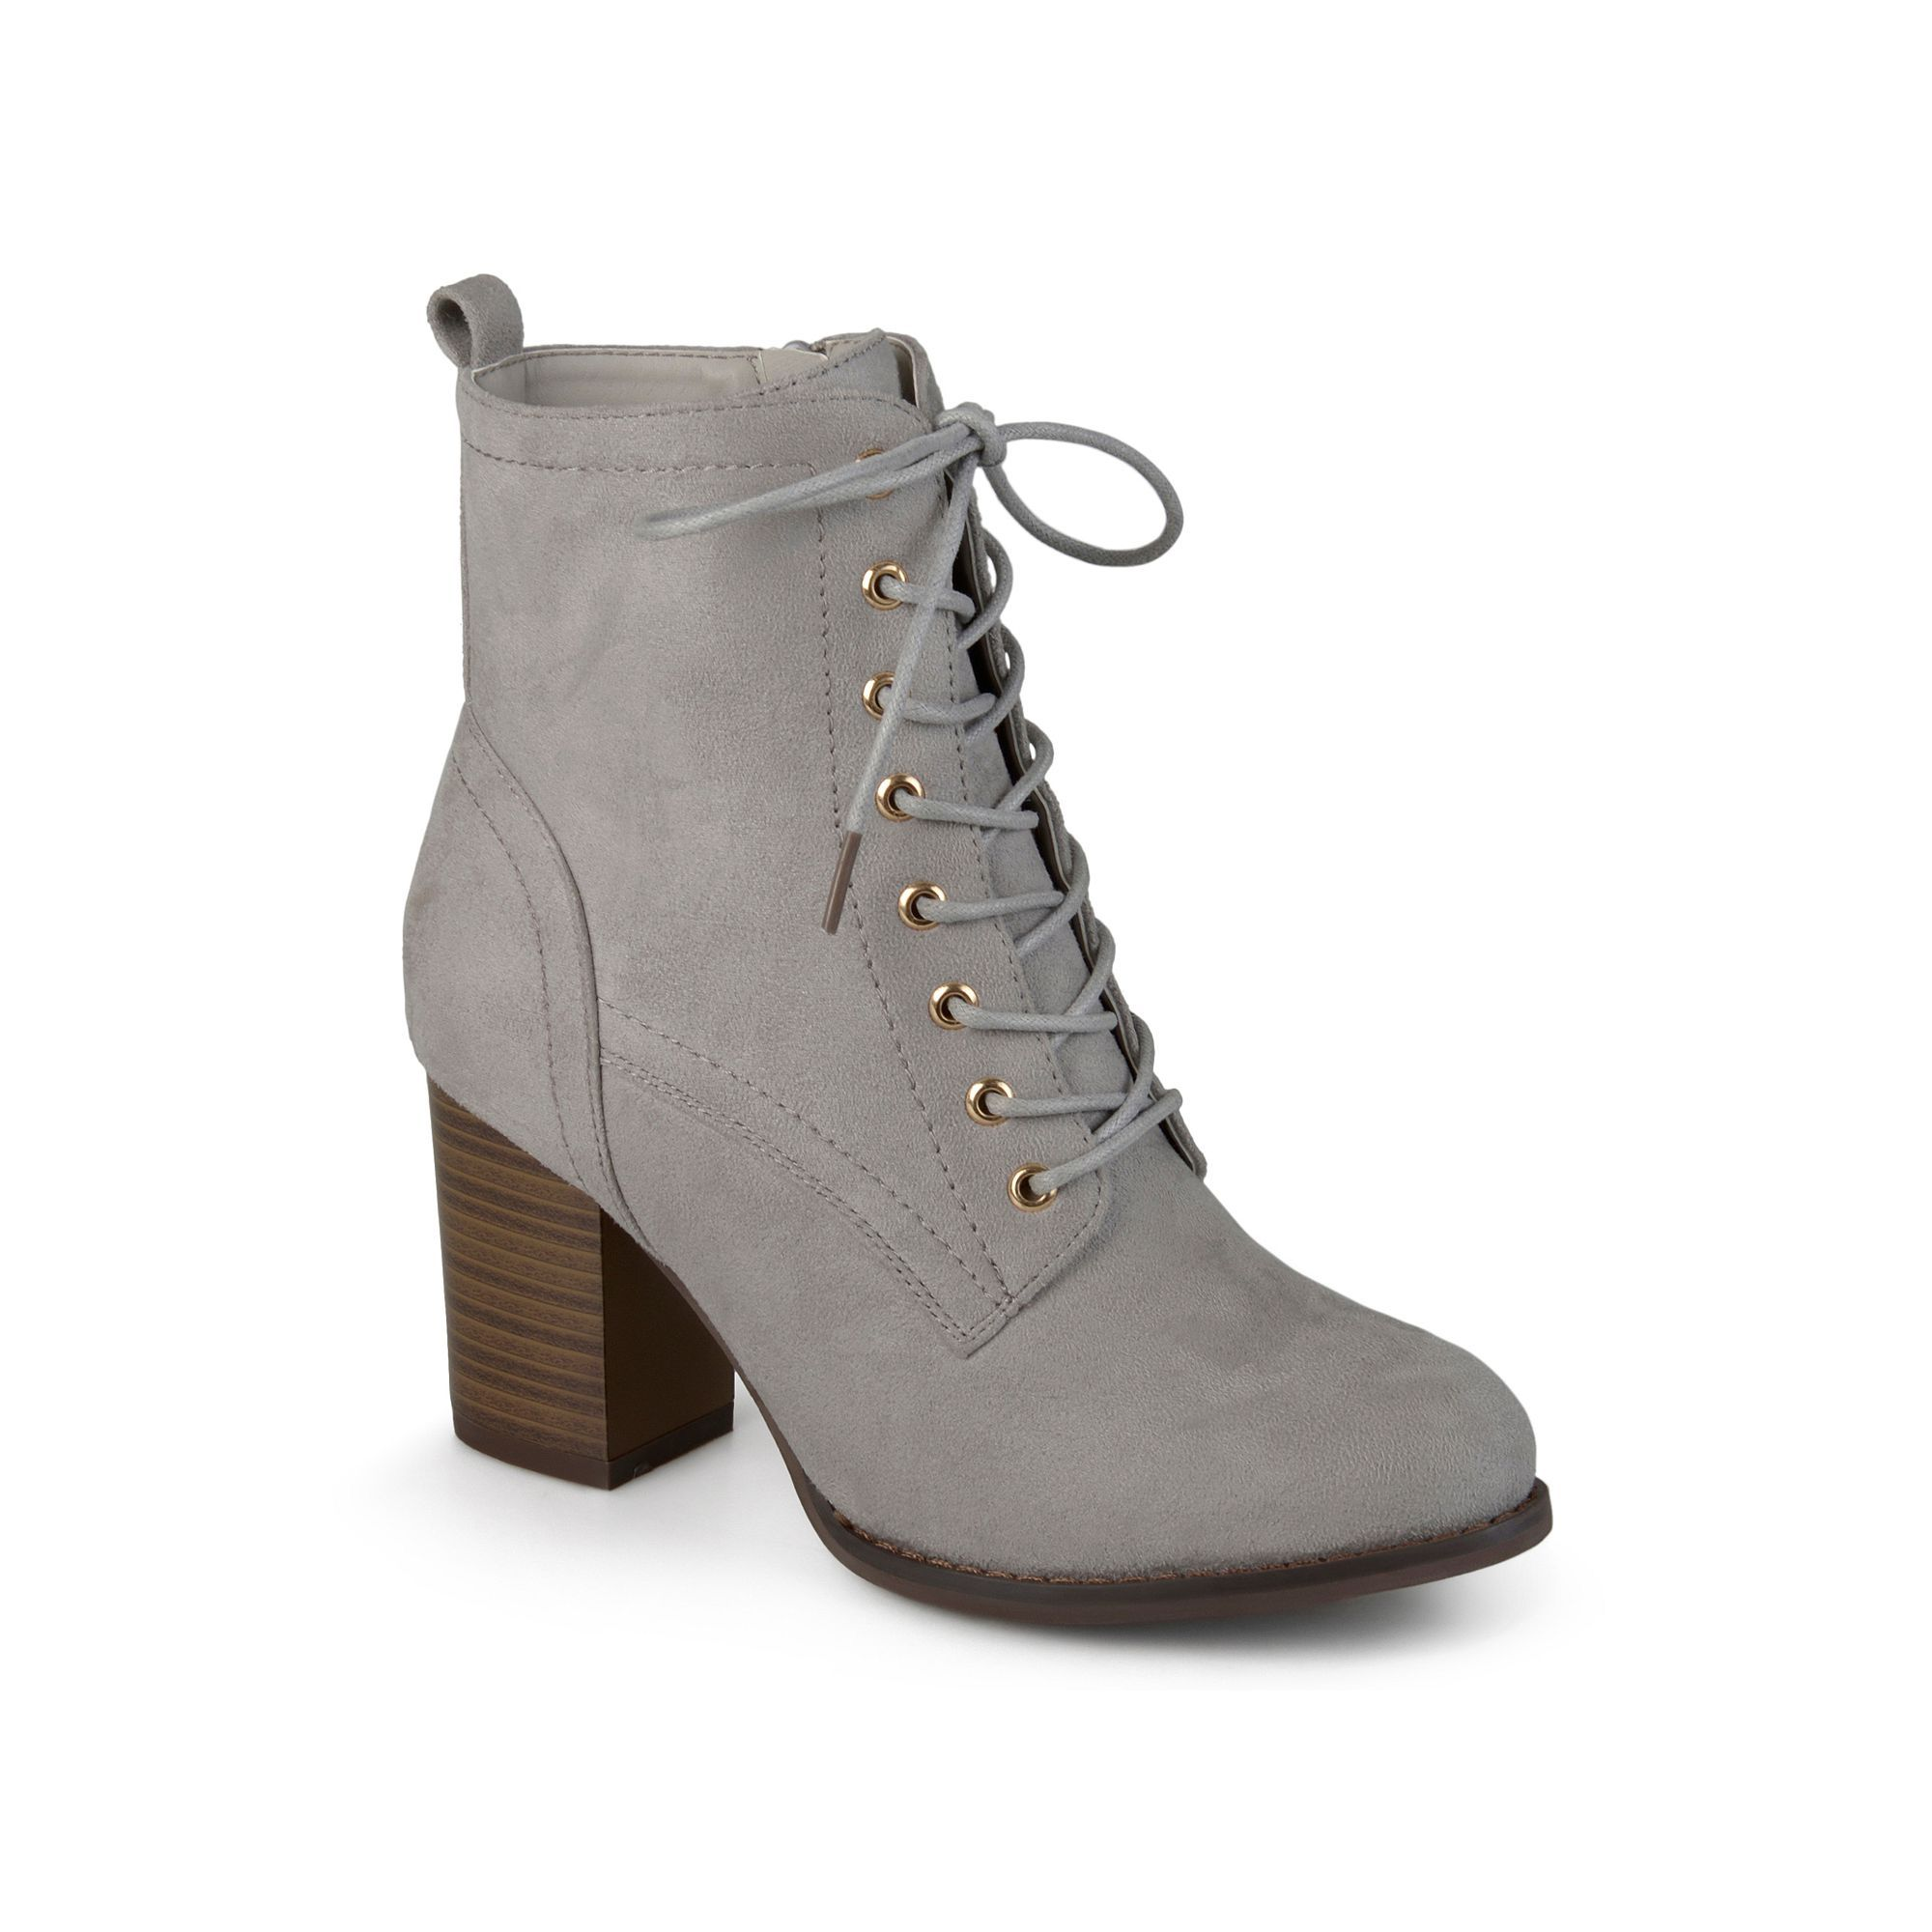 67cc2bafc151 Journee Collection Baylor Women s Block Heel Ankle Boots